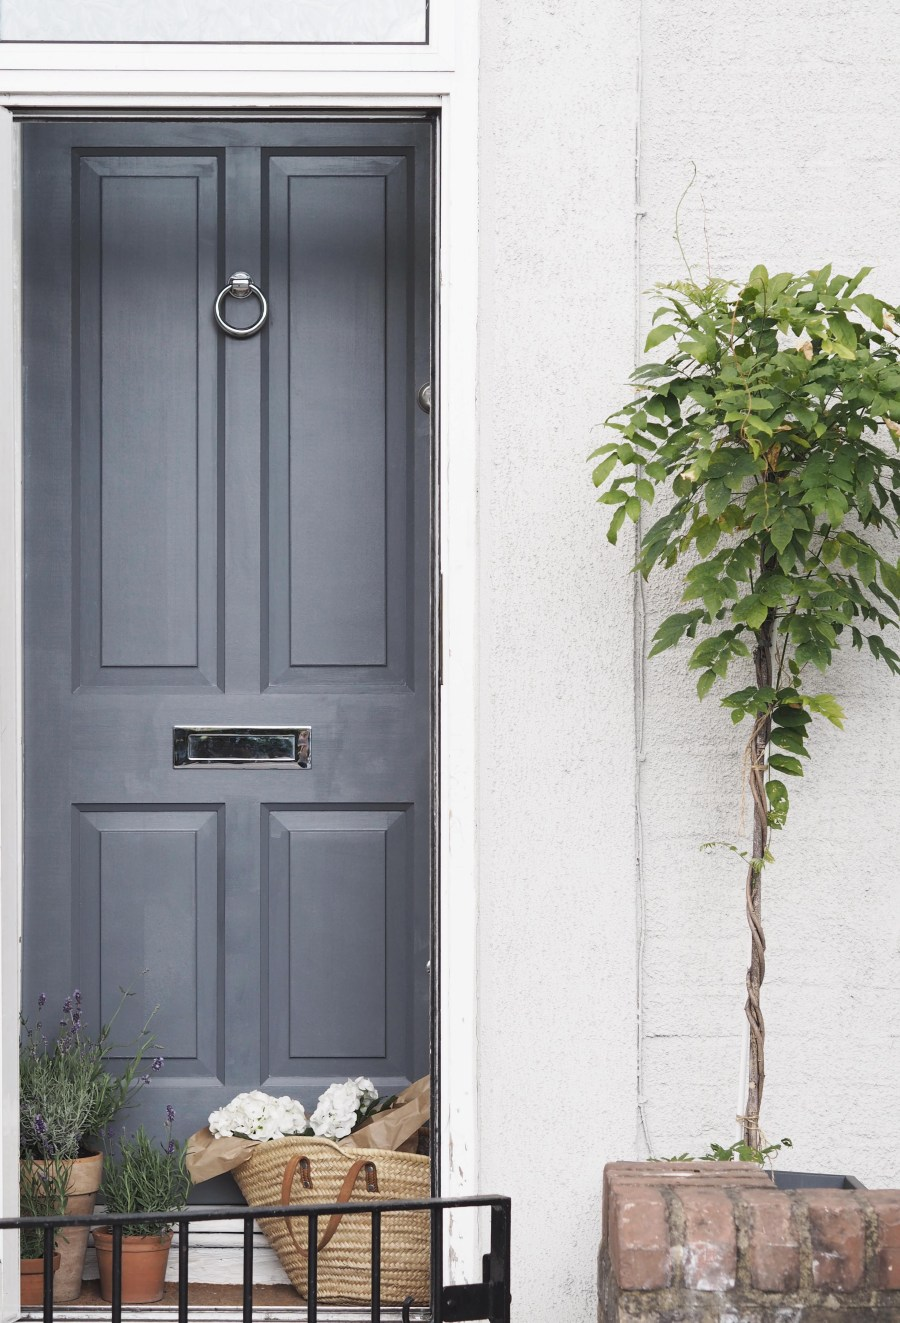 A wisteria will slowly grow over the frame to give a wonderful green entrance